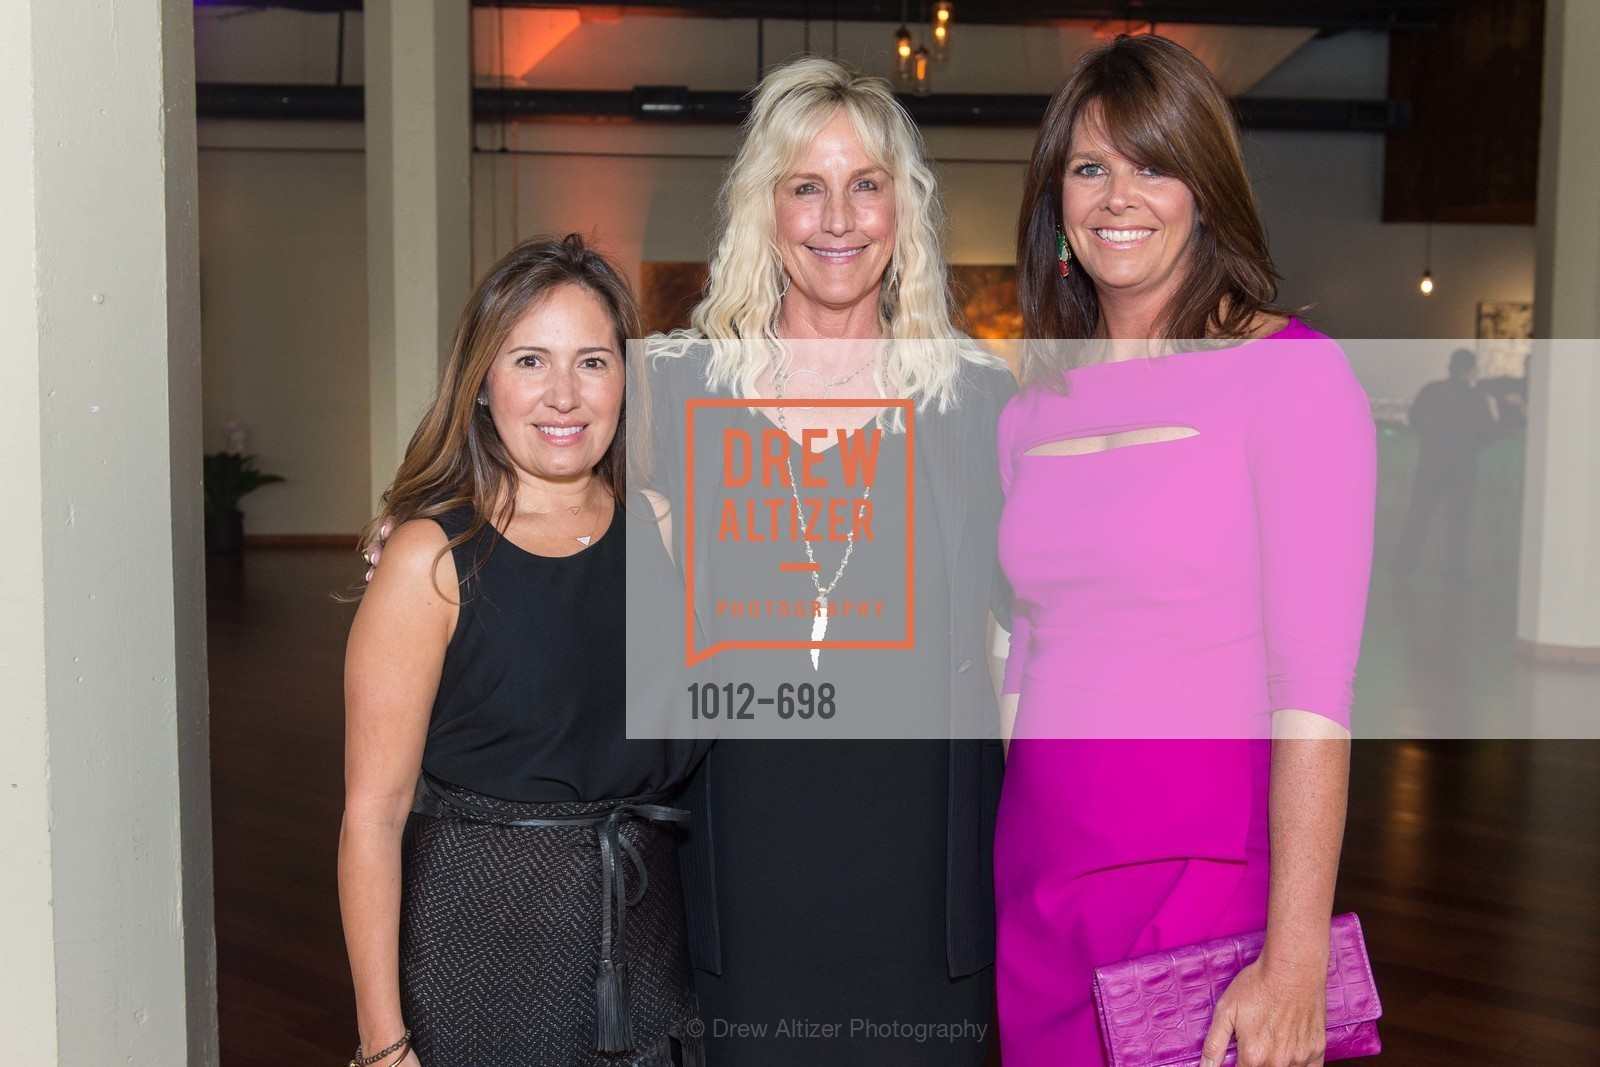 Ingrid Carney, Erin Brockovich, Christine Gardner, EWG's 6th Annual Earth Dinner, US, May 5th, 2015,Drew Altizer, Drew Altizer Photography, full-service agency, private events, San Francisco photographer, photographer california